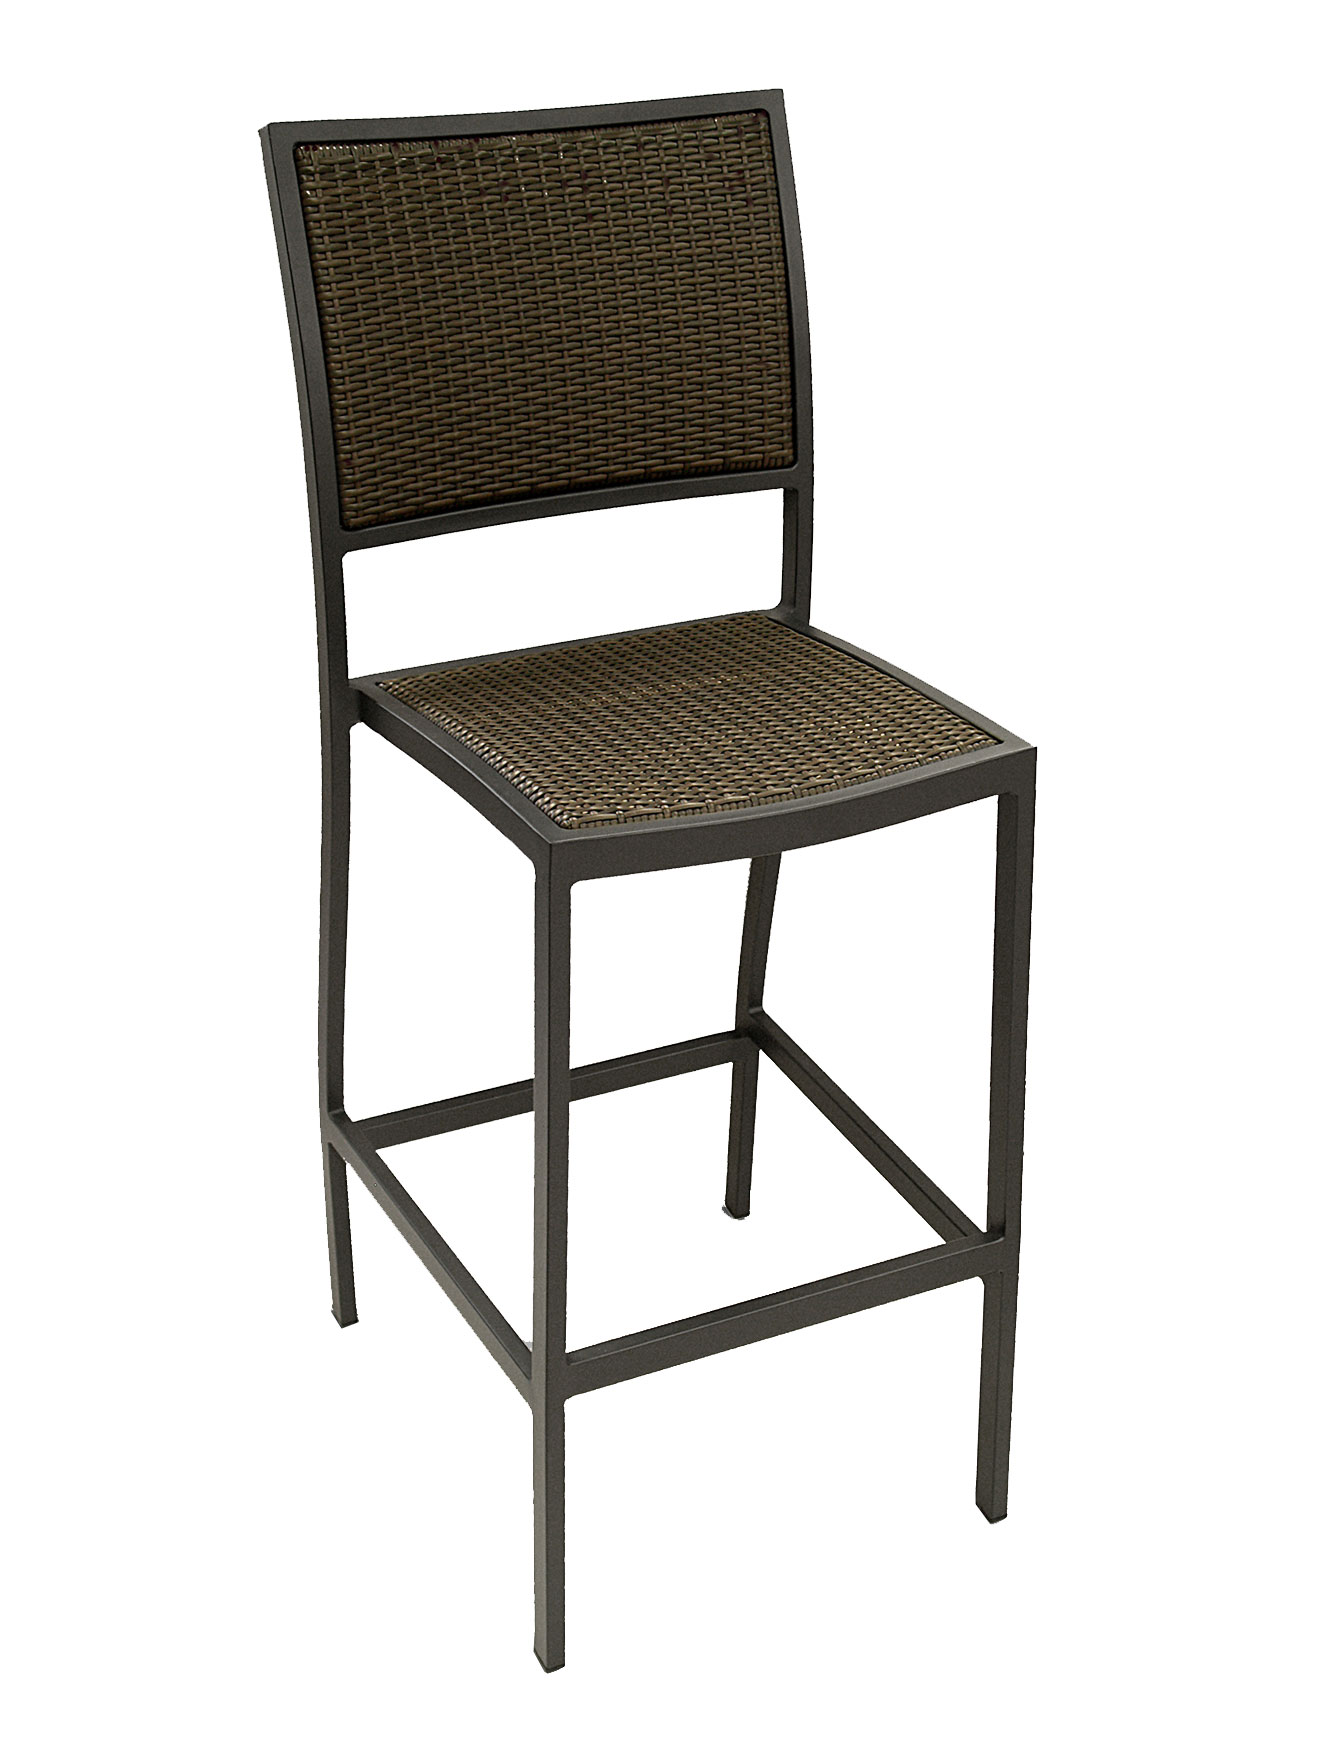 Weave Seat Aluminum Square Frame Armless Bar Stool